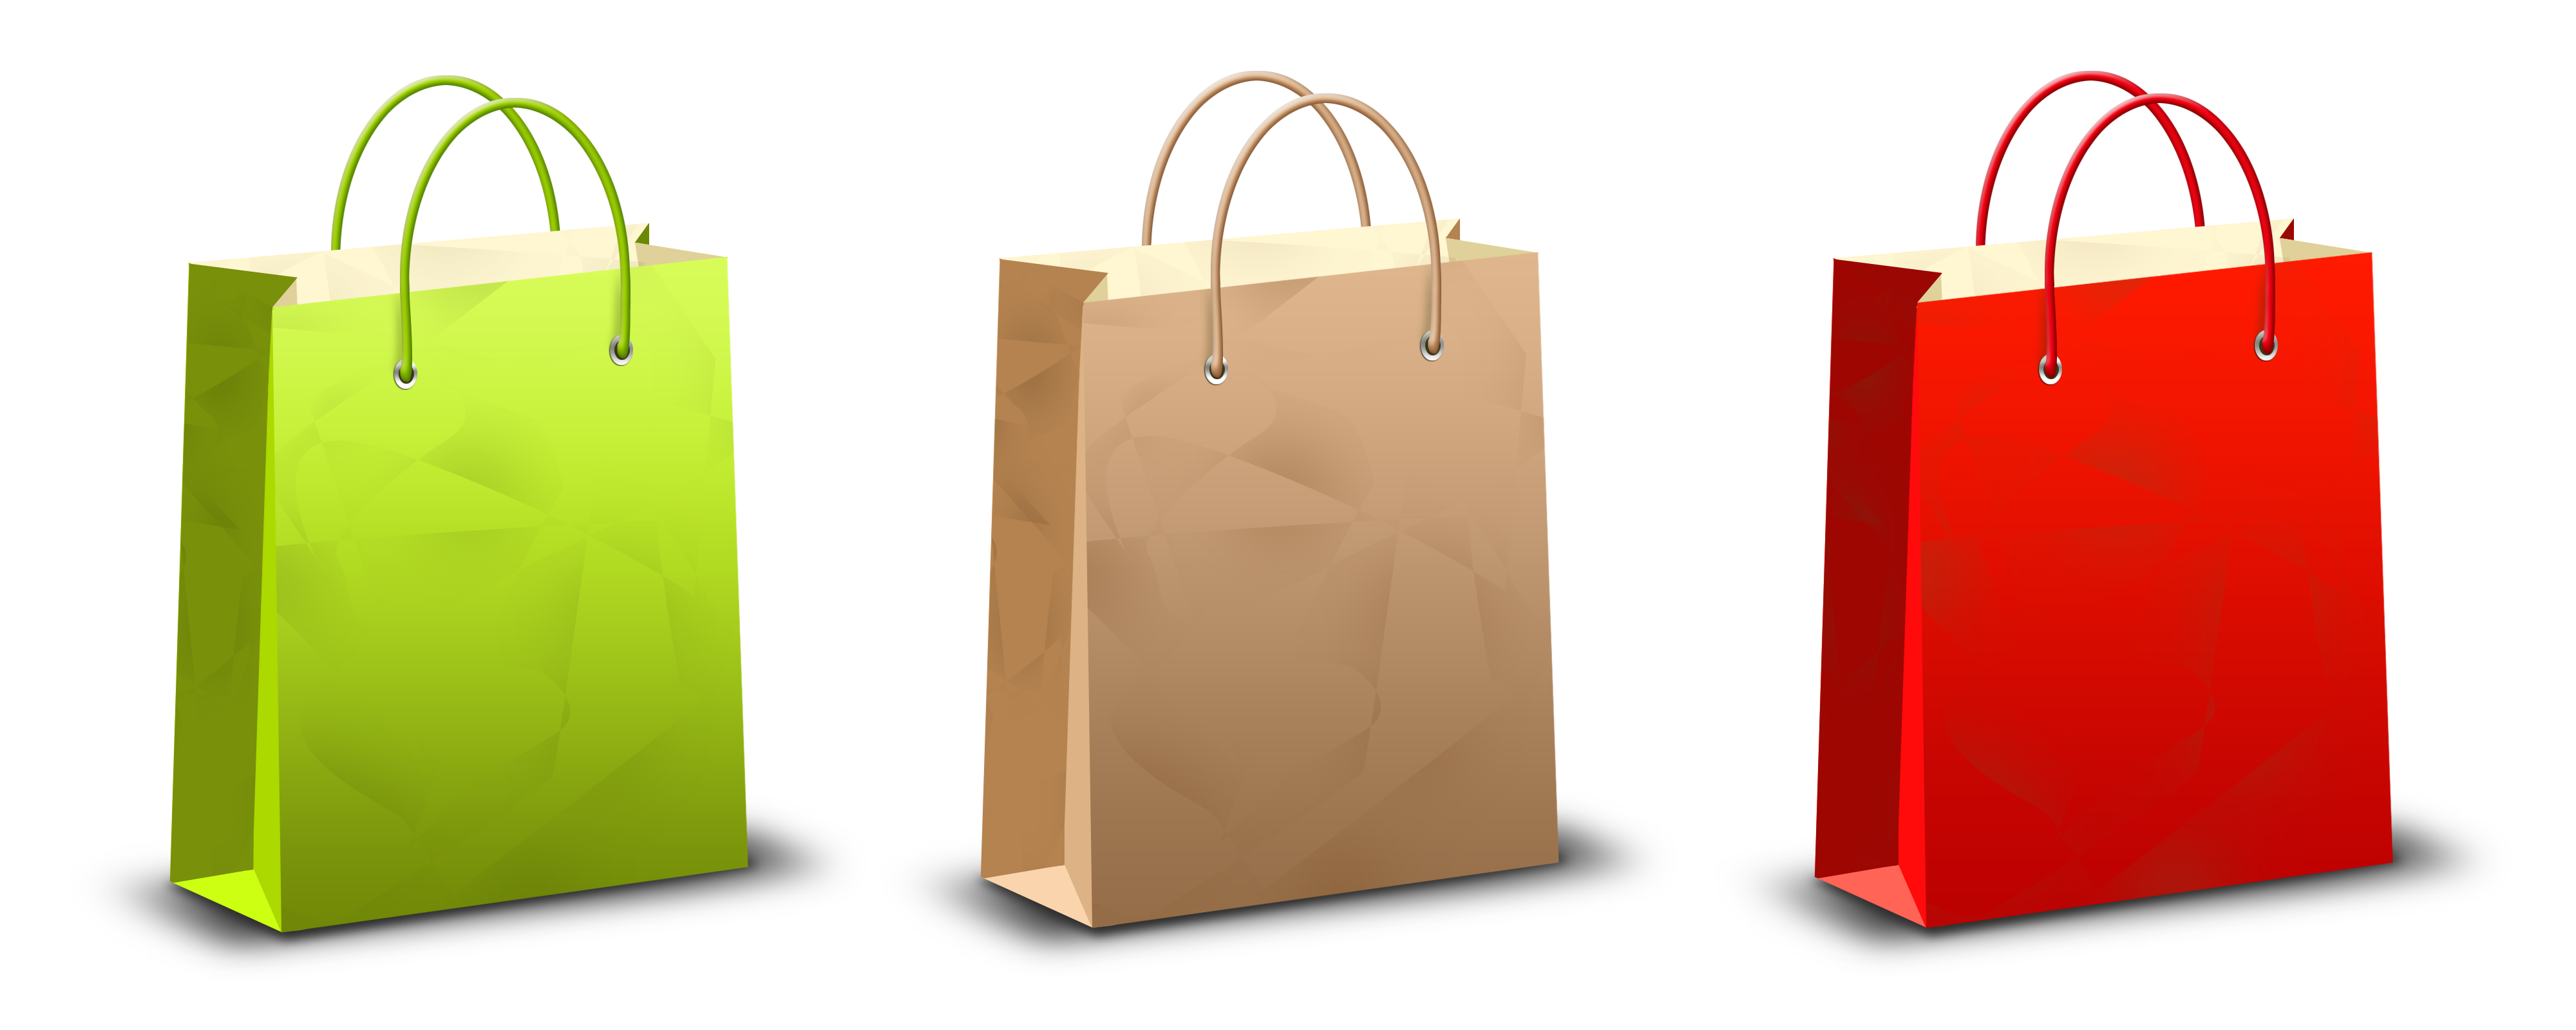 Bag Shopping - ClipArt Best